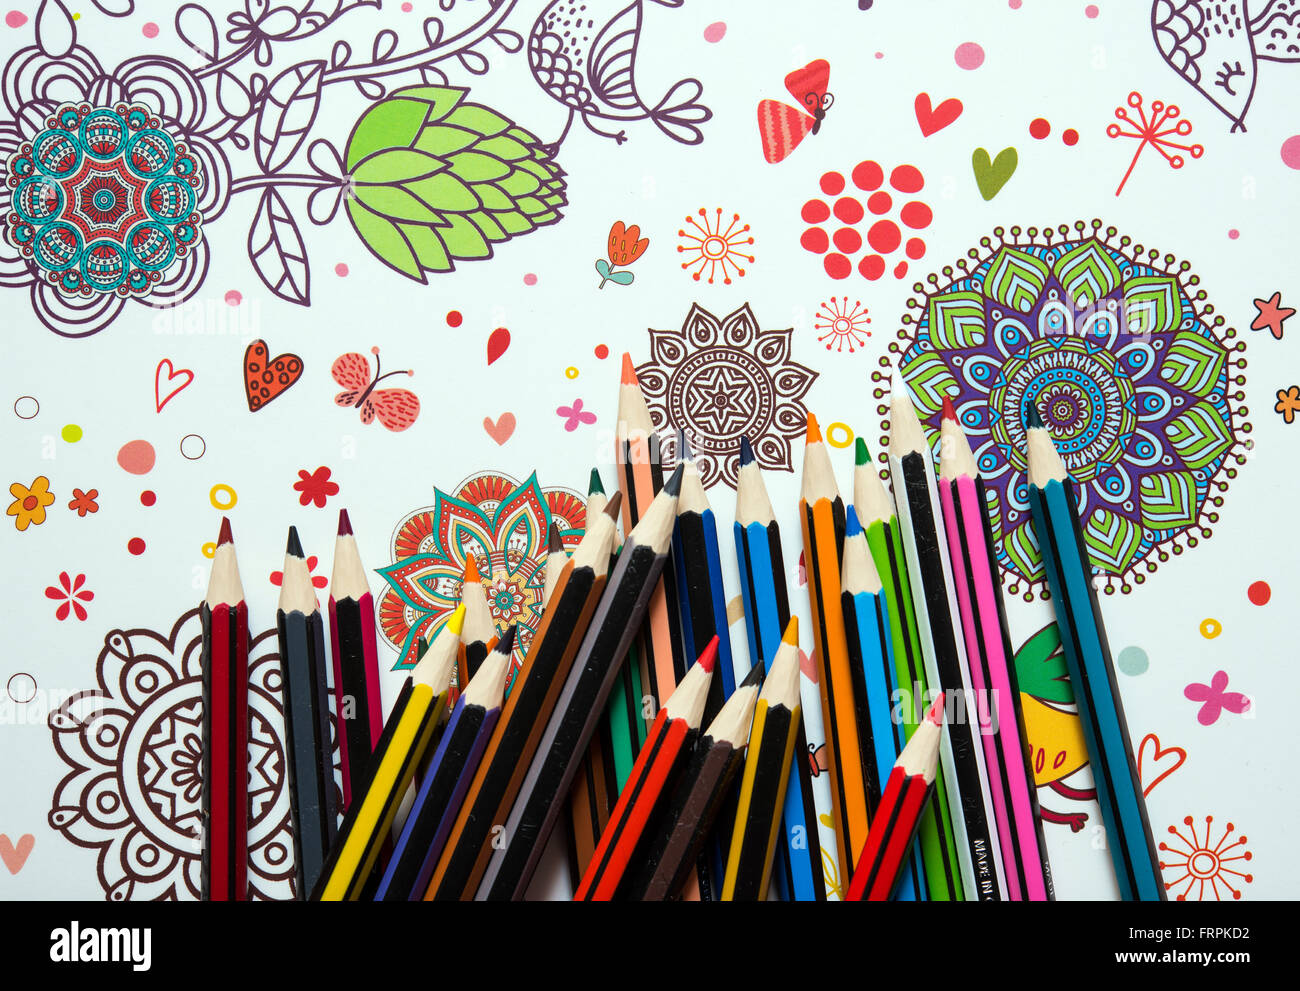 A Page In The Adult Coloring Book My Phantastic Ocean From Johanna